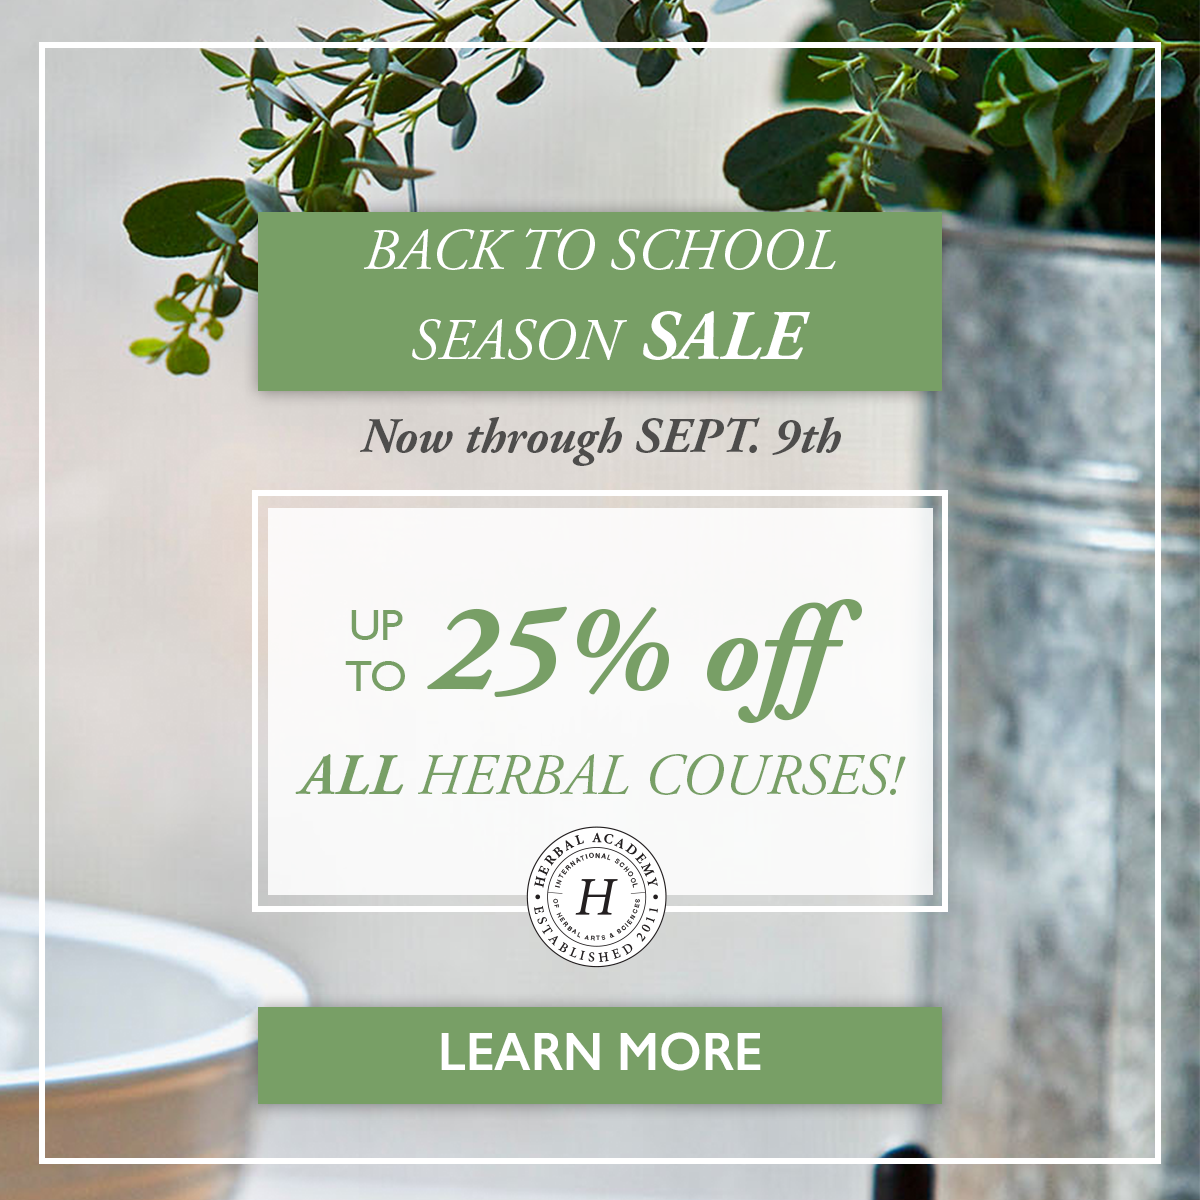 8 Of Your Most Frequently Asked Herbal Questions, Answered | Herbal Academy | It's Back to School season here at the Academy, and we're answering some of your most FAQ in this Q&A post!